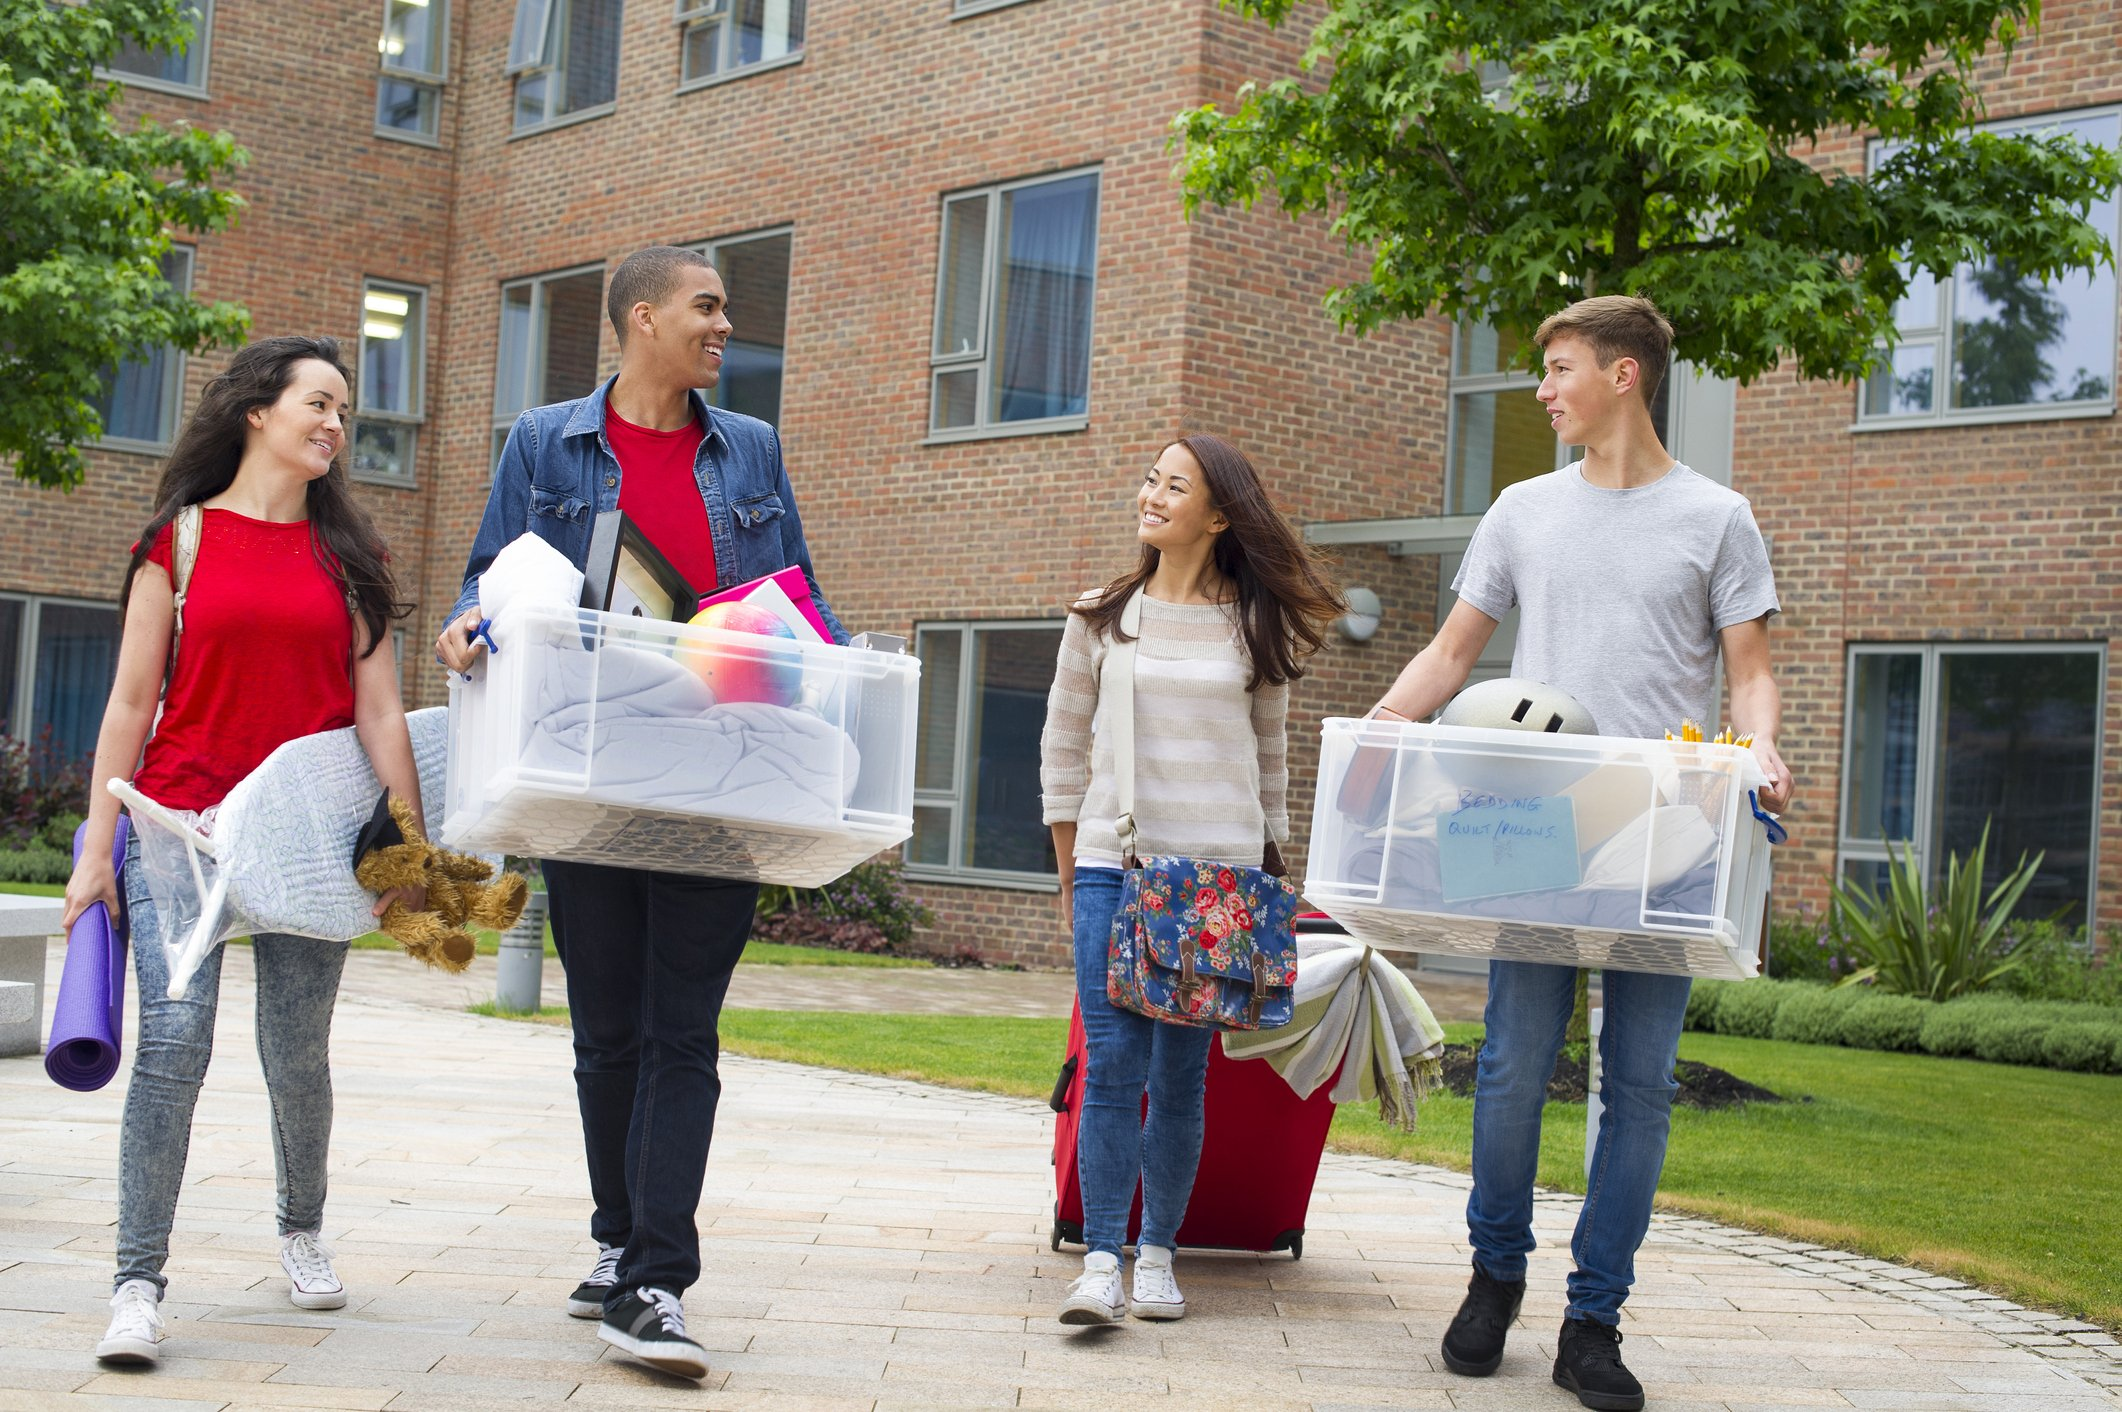 Far east orchard buys student dorms in u.k.